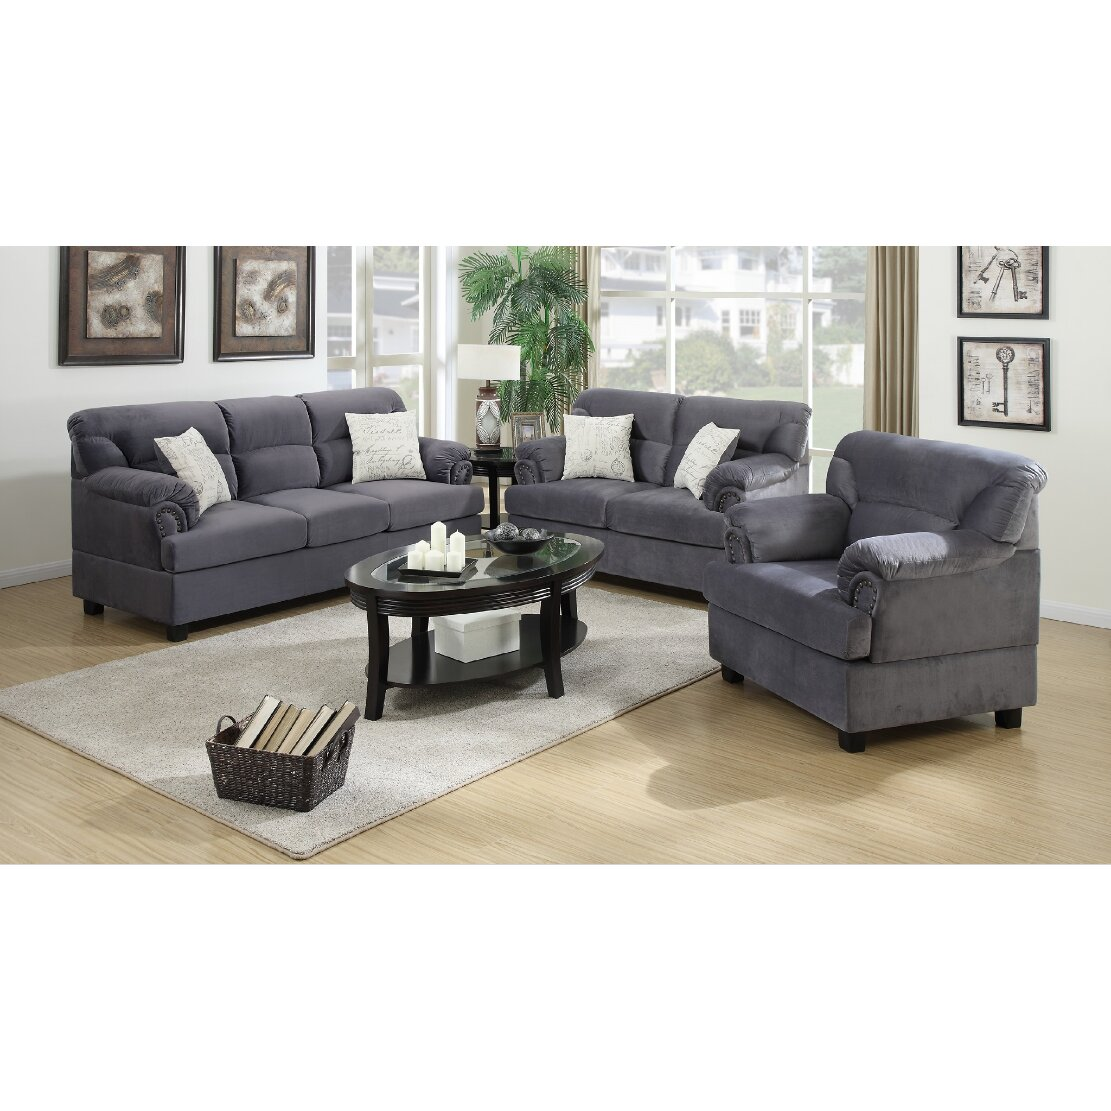 A j homes studio penny 3 piece living room set wayfair for 3 piece living room furniture